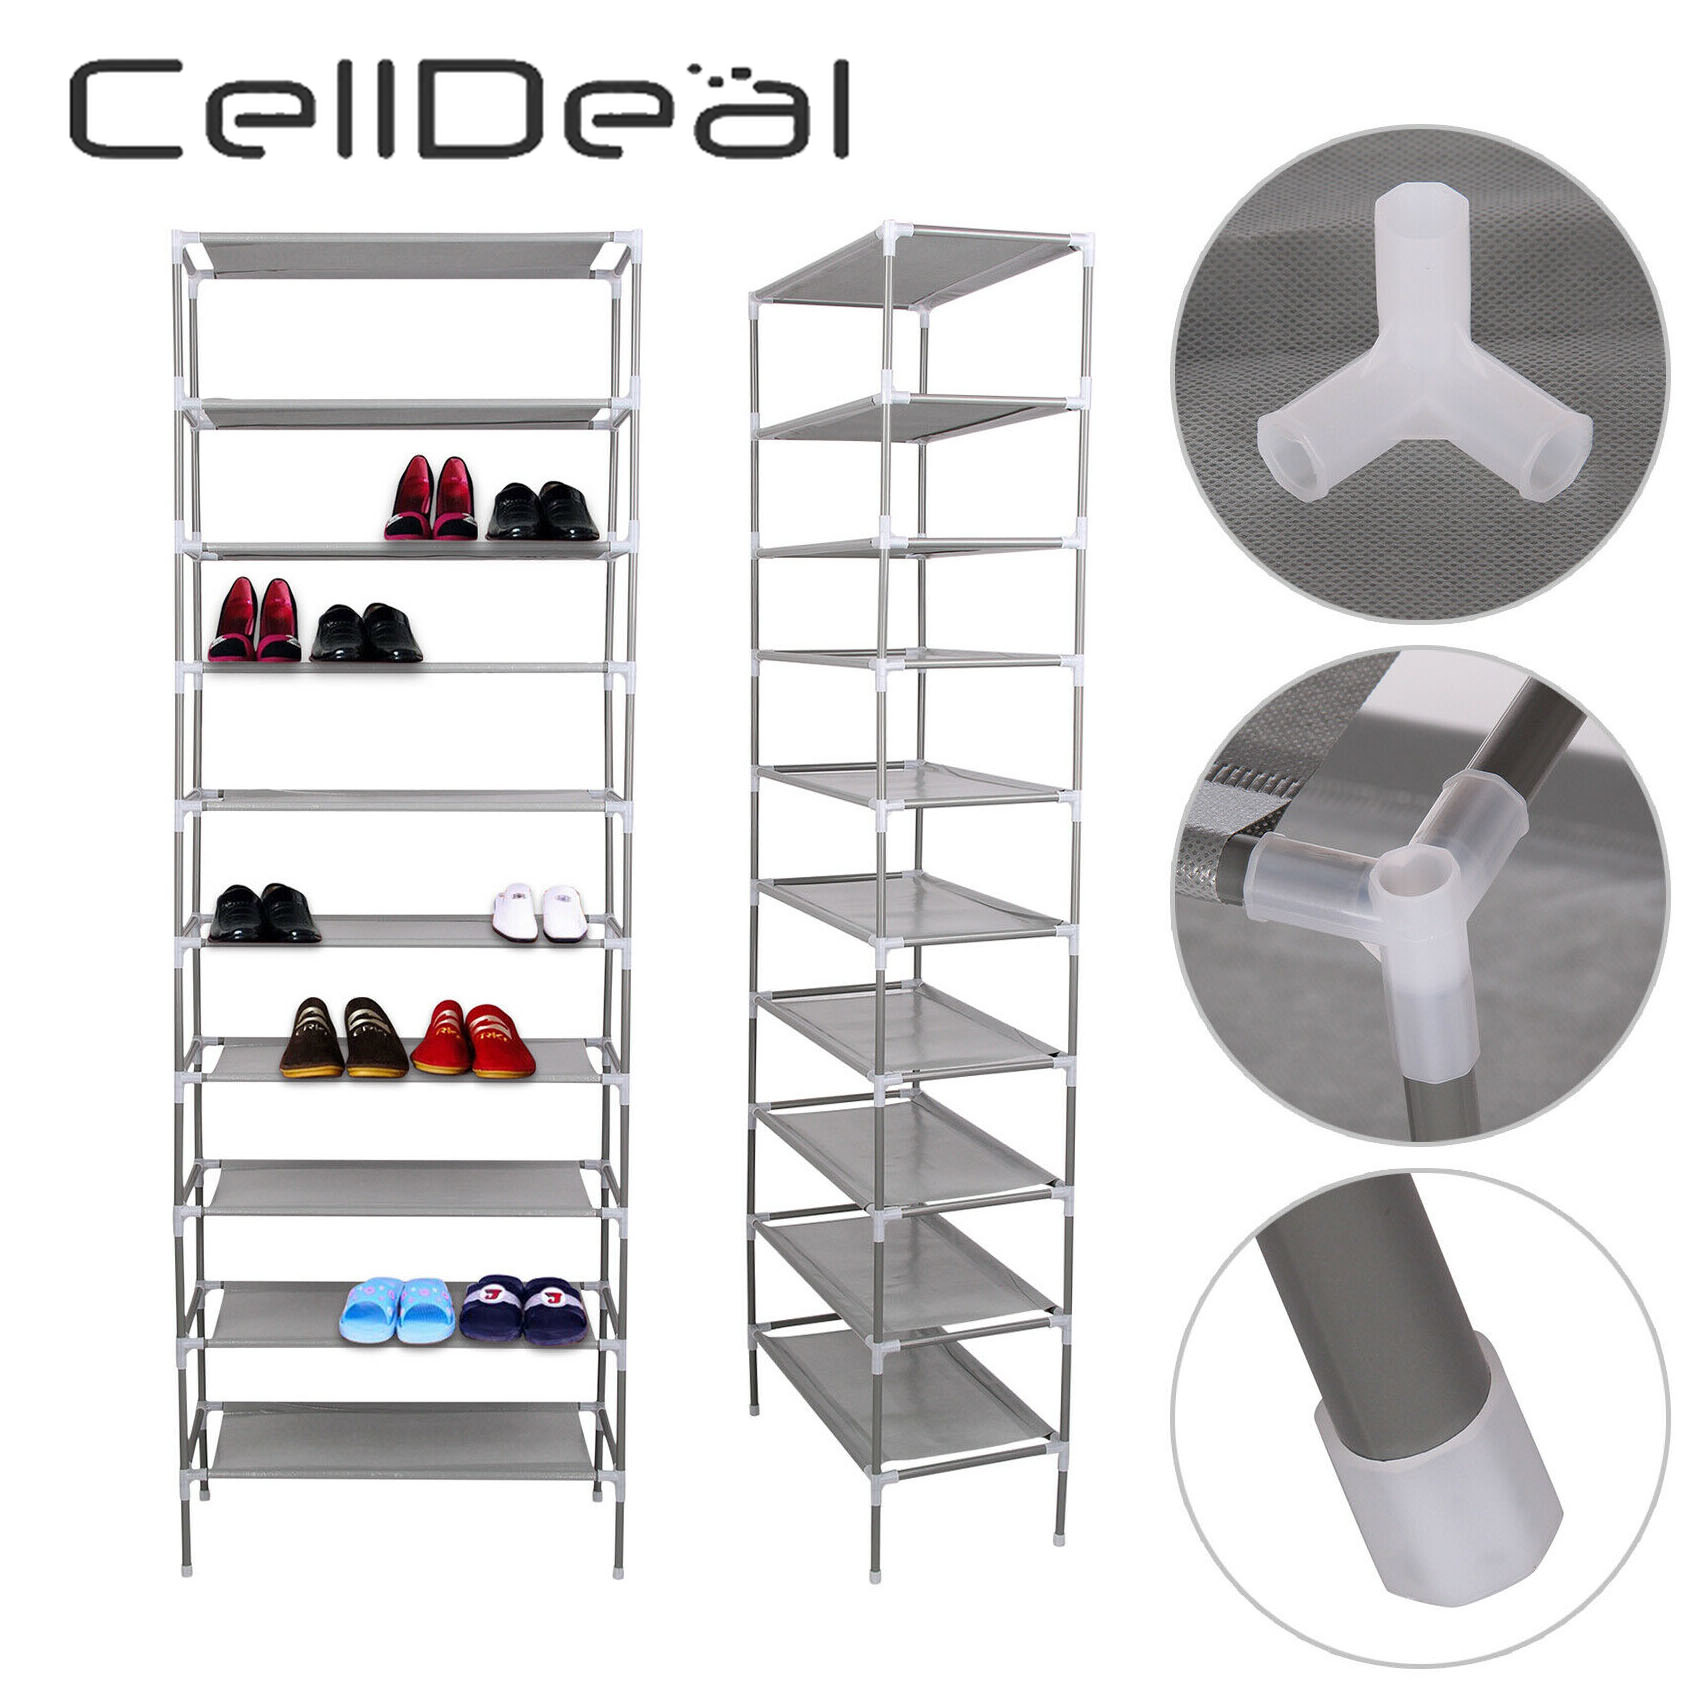 CellDeal Multi Layer Tiers Non-Woven Fabric Dustproof Shoe Rack Storage Organizer Shoe Cabinet Shelf Cabinet Shoe Organizer 1